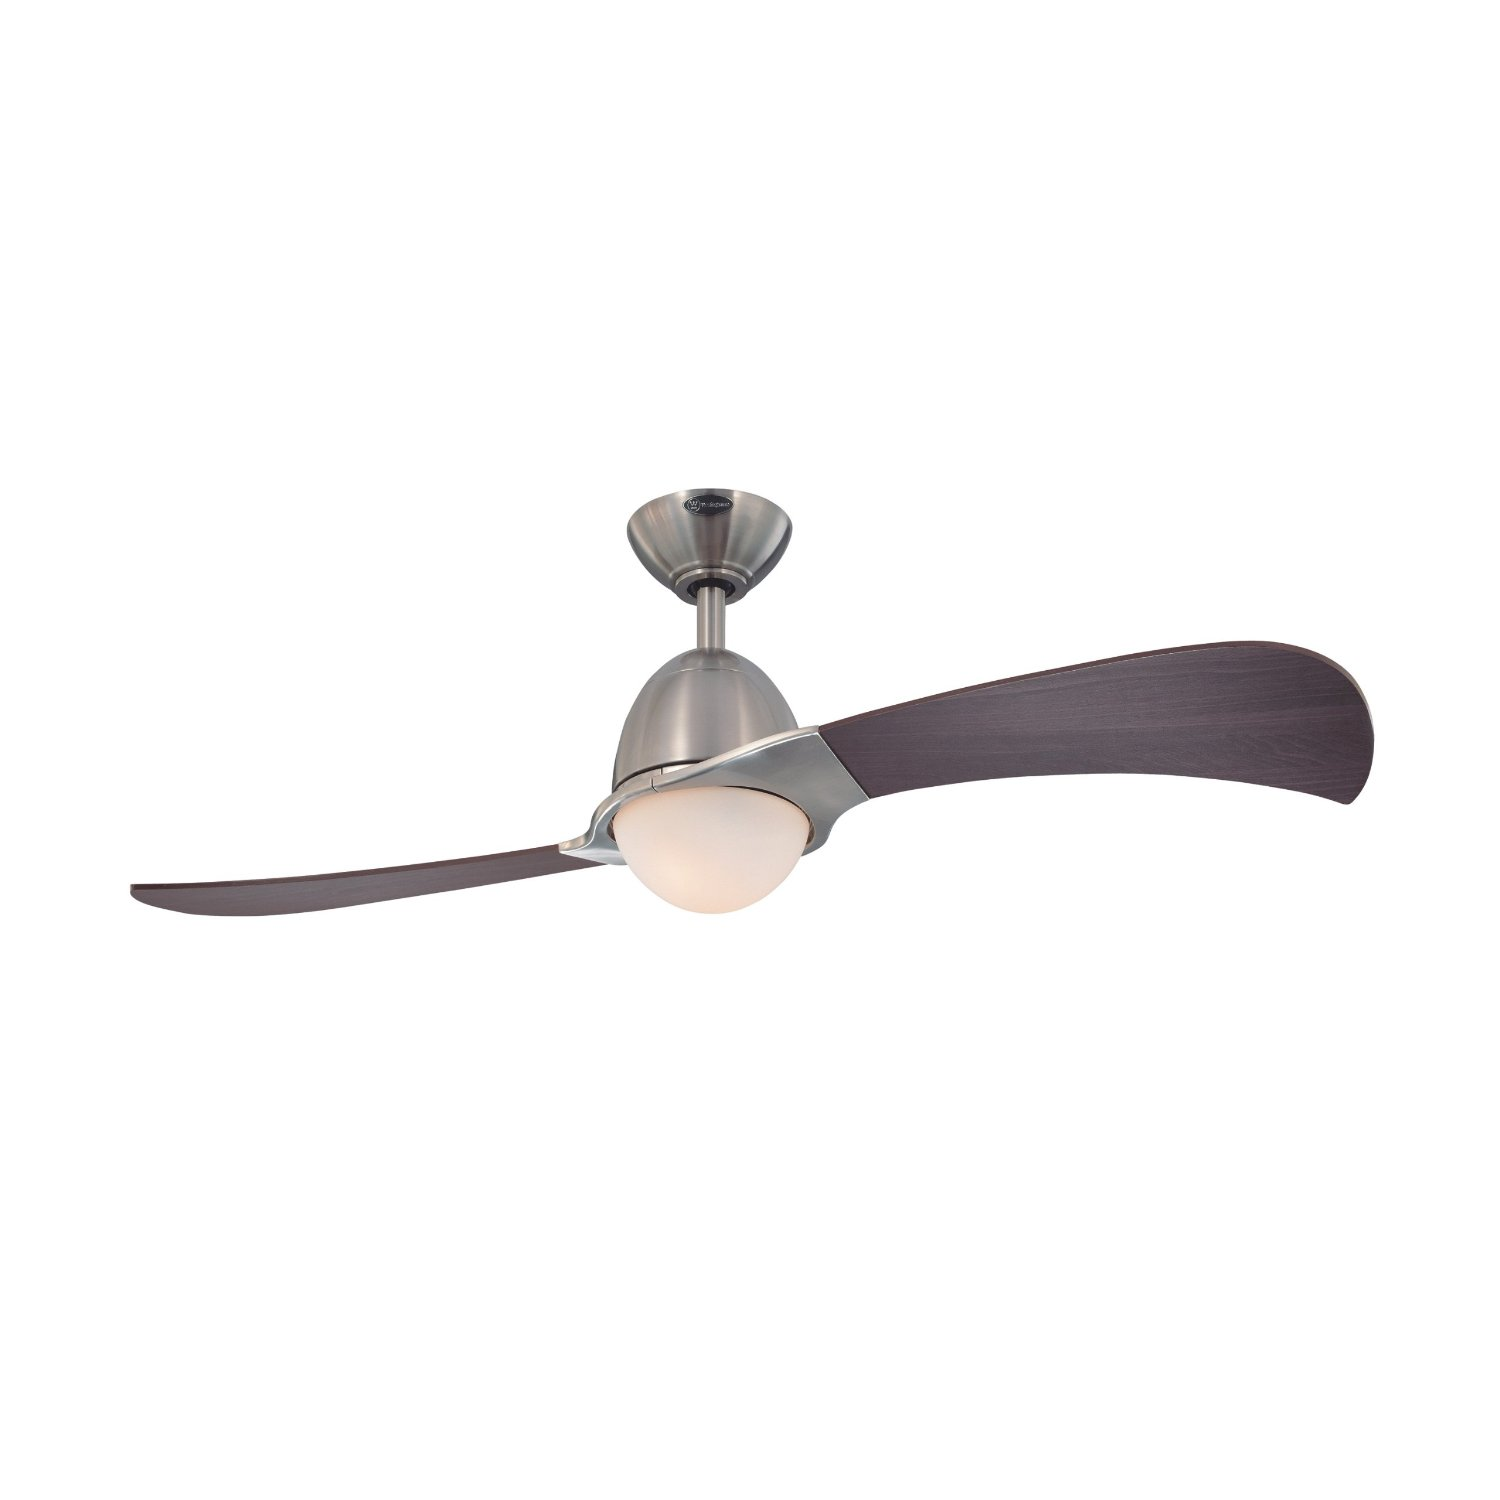 Westinghouse Solana Two Blade Ceiling Fan